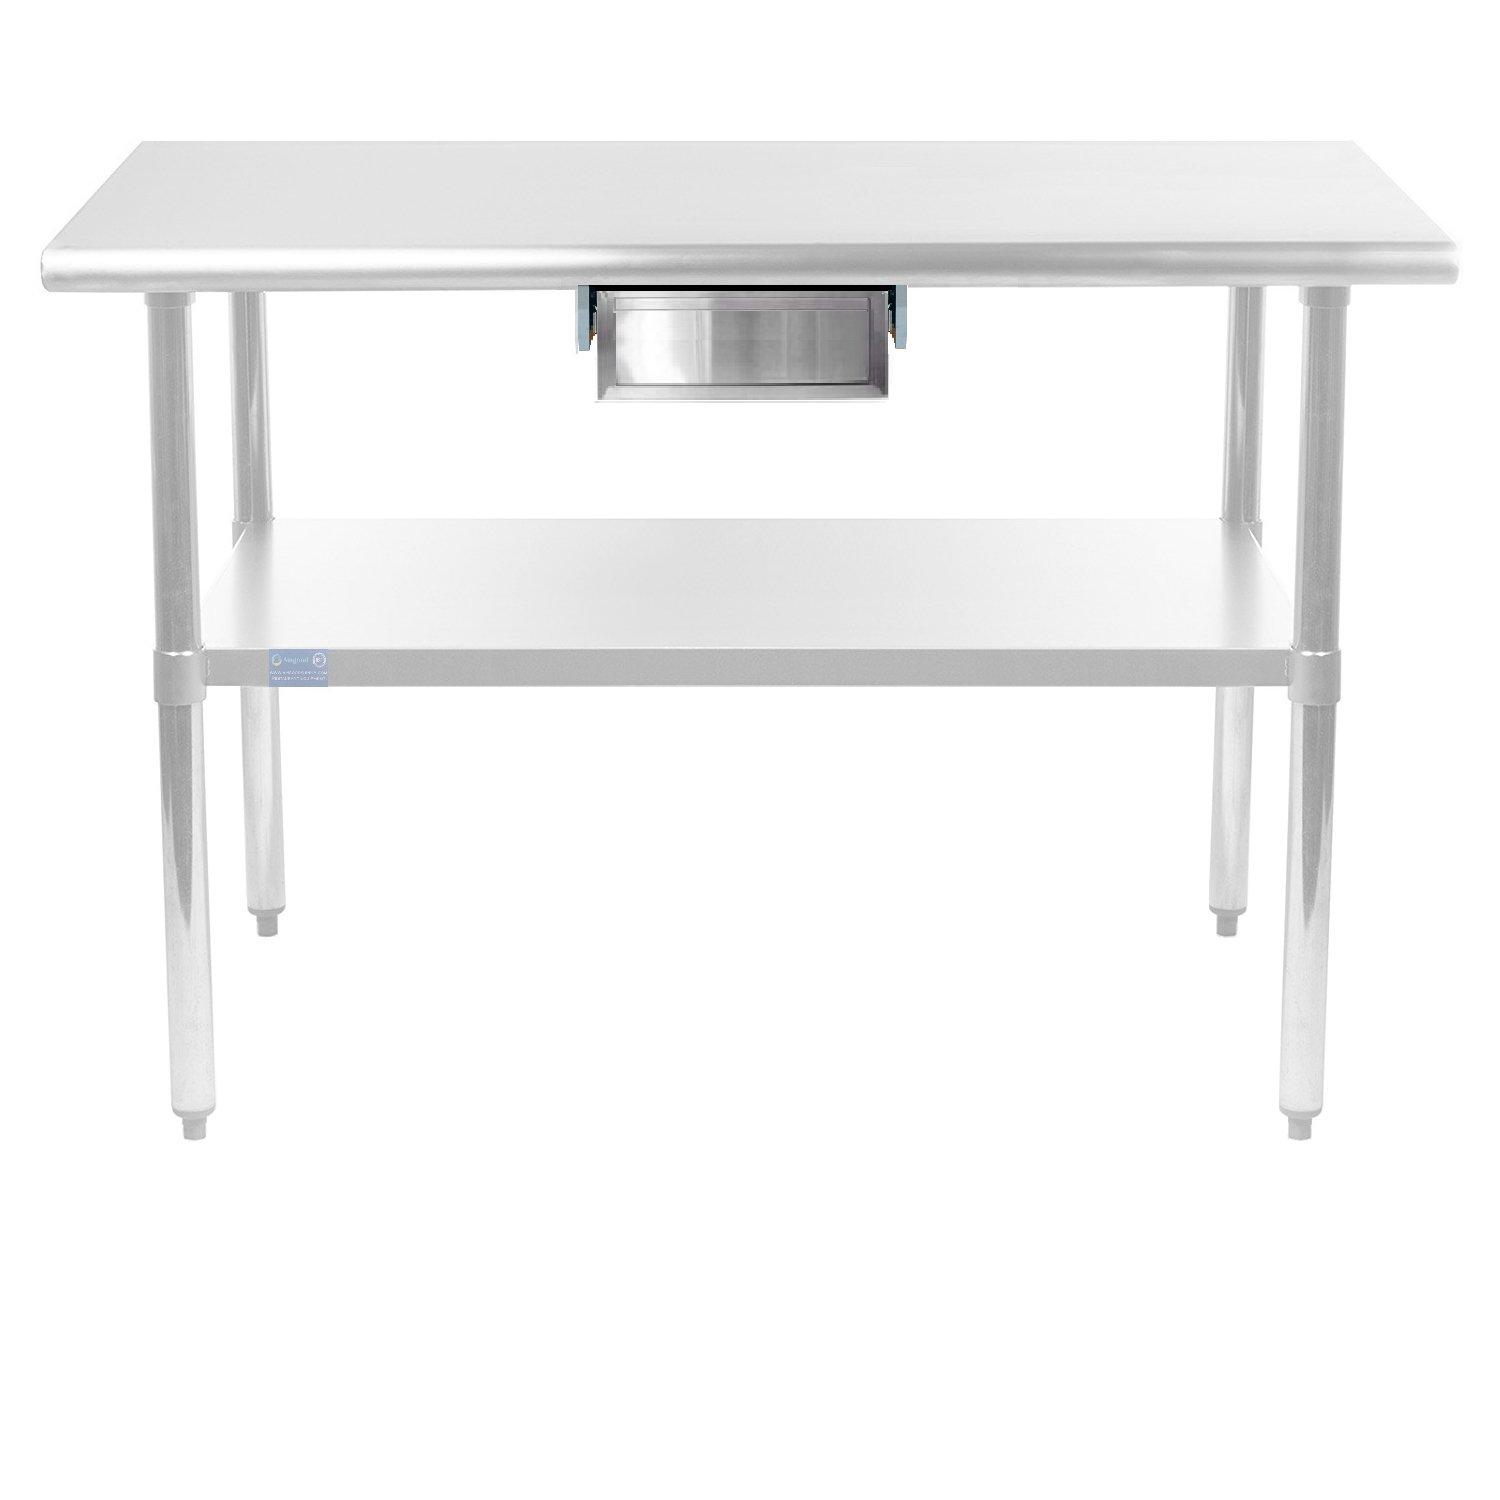 AmGood Stainless Steel Table Drawer - Metal Drawer For Prep Work Table, Heavy Duty, NSF Certified (20'' x 15'' x 5'')